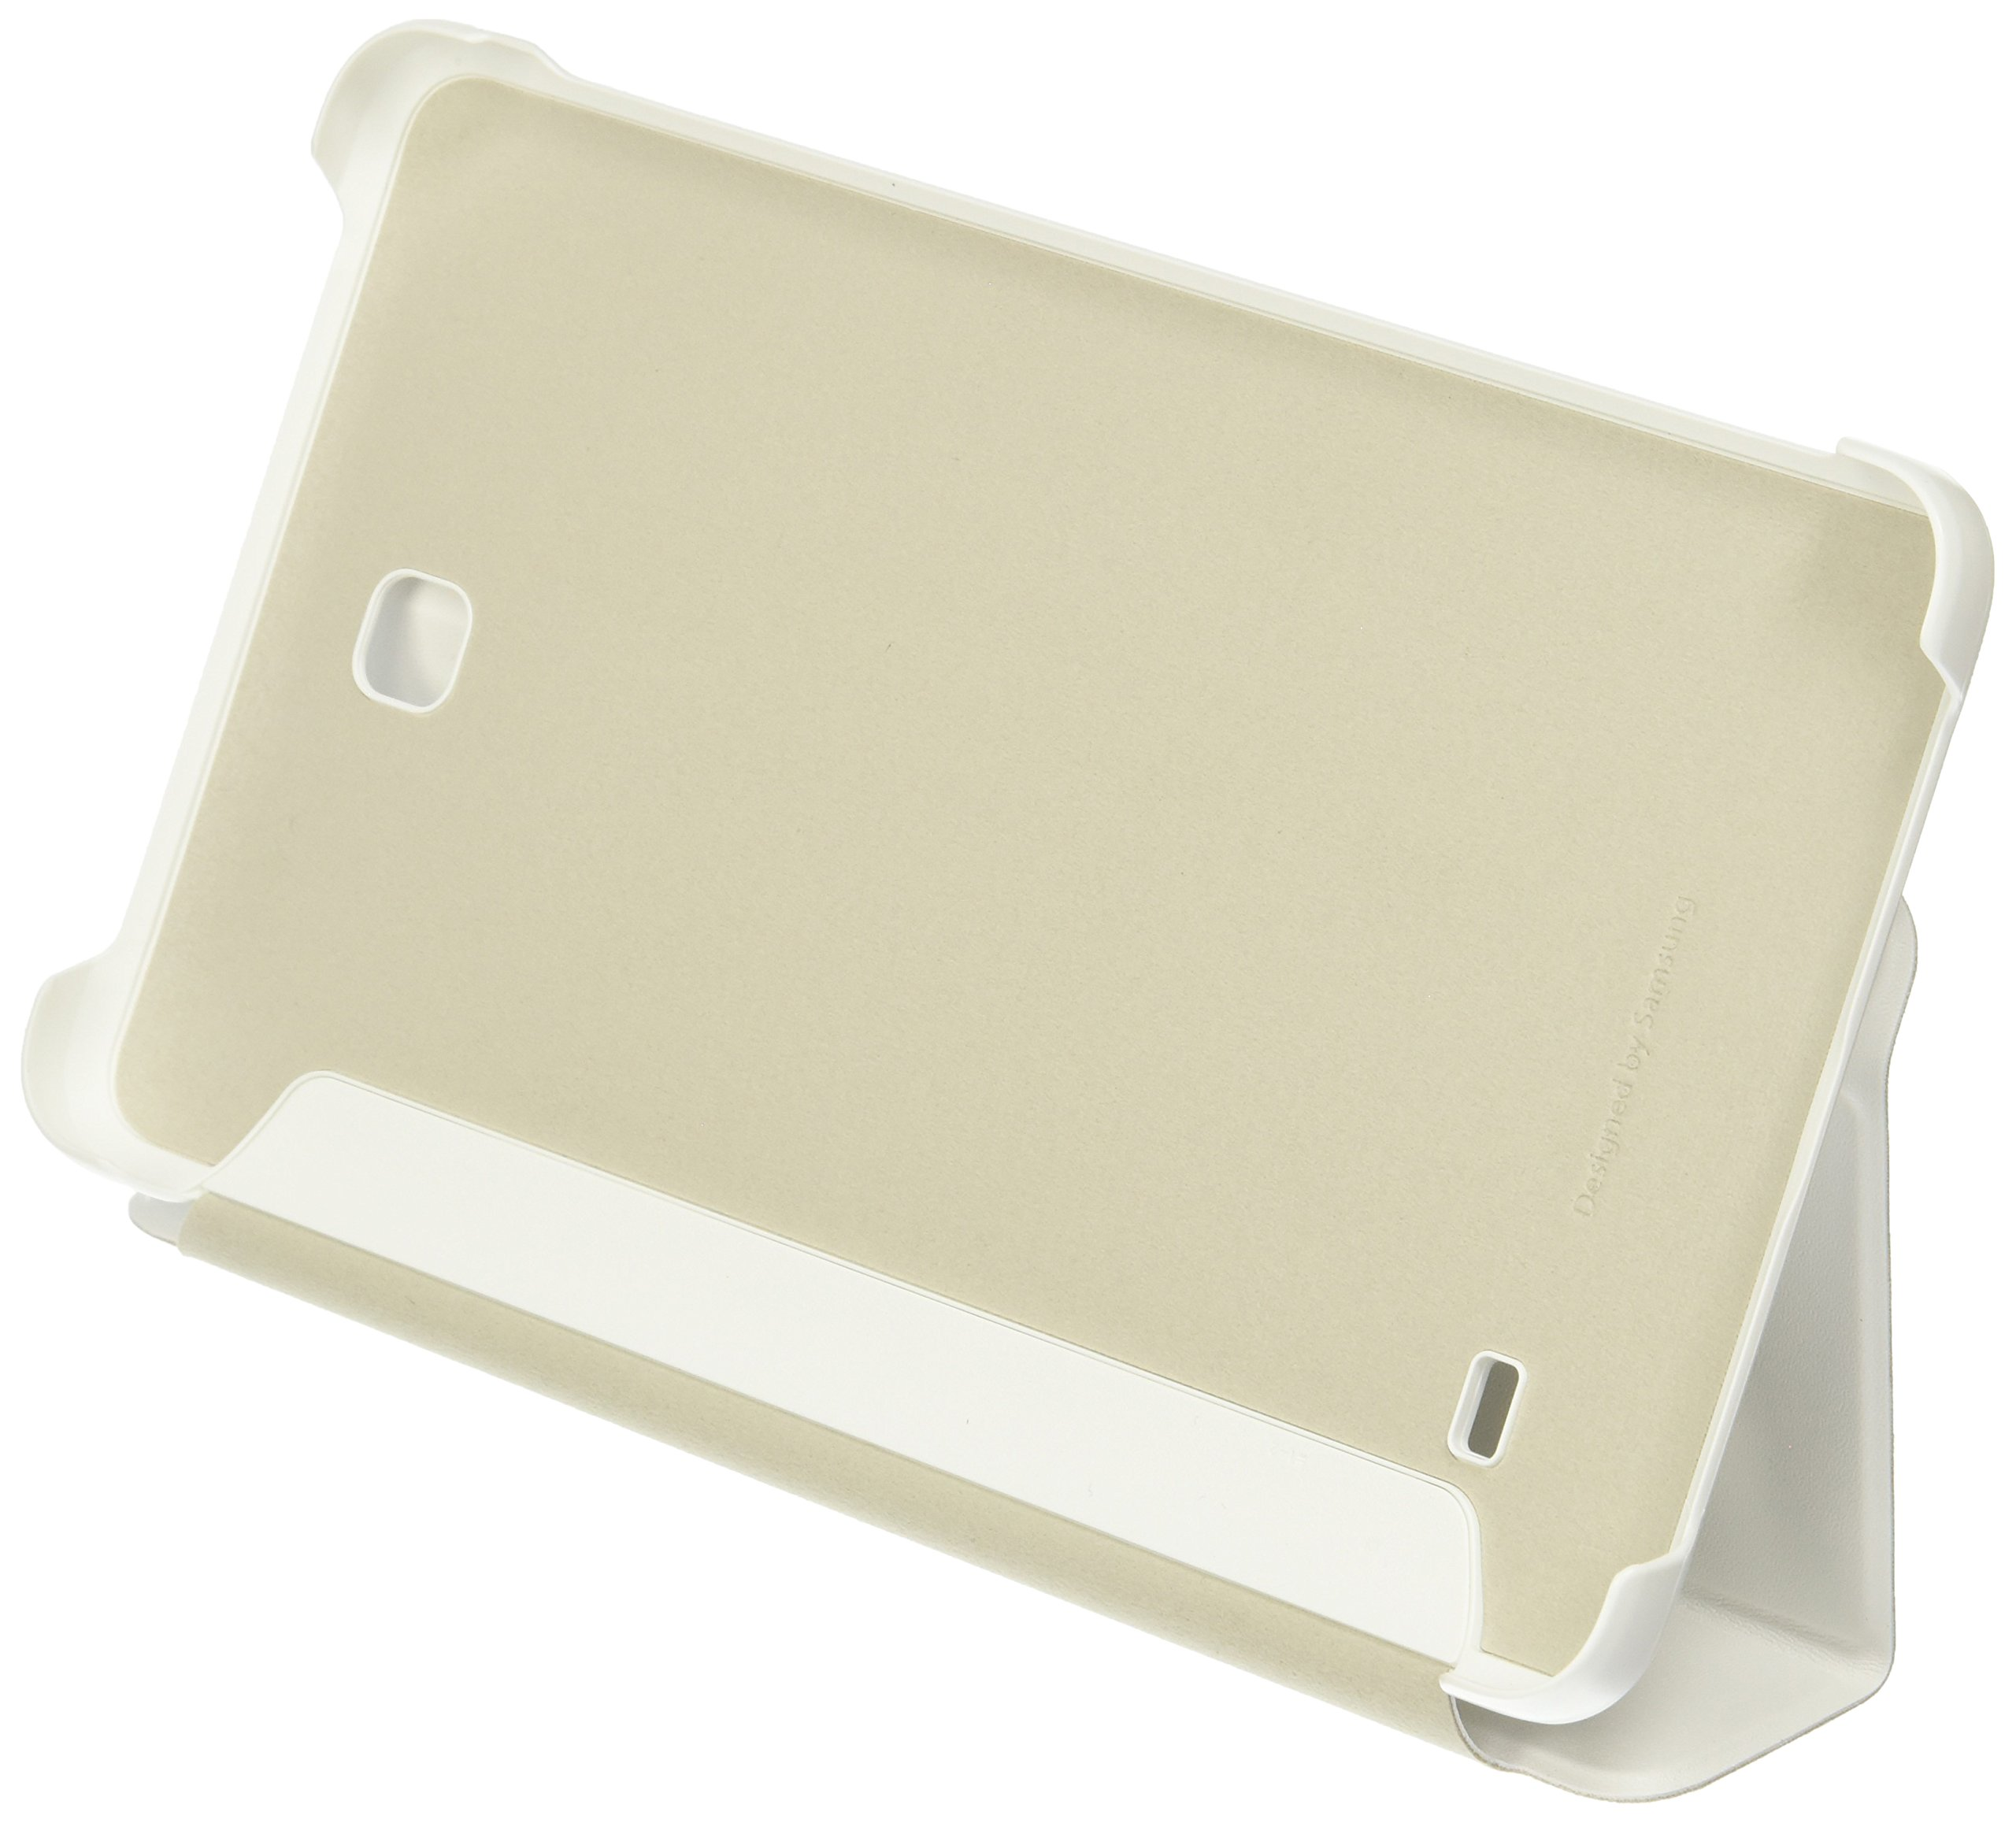 Samsung Book Cover for Galaxy Tab 4 7.0 (EF-BT230WWEGUJ)